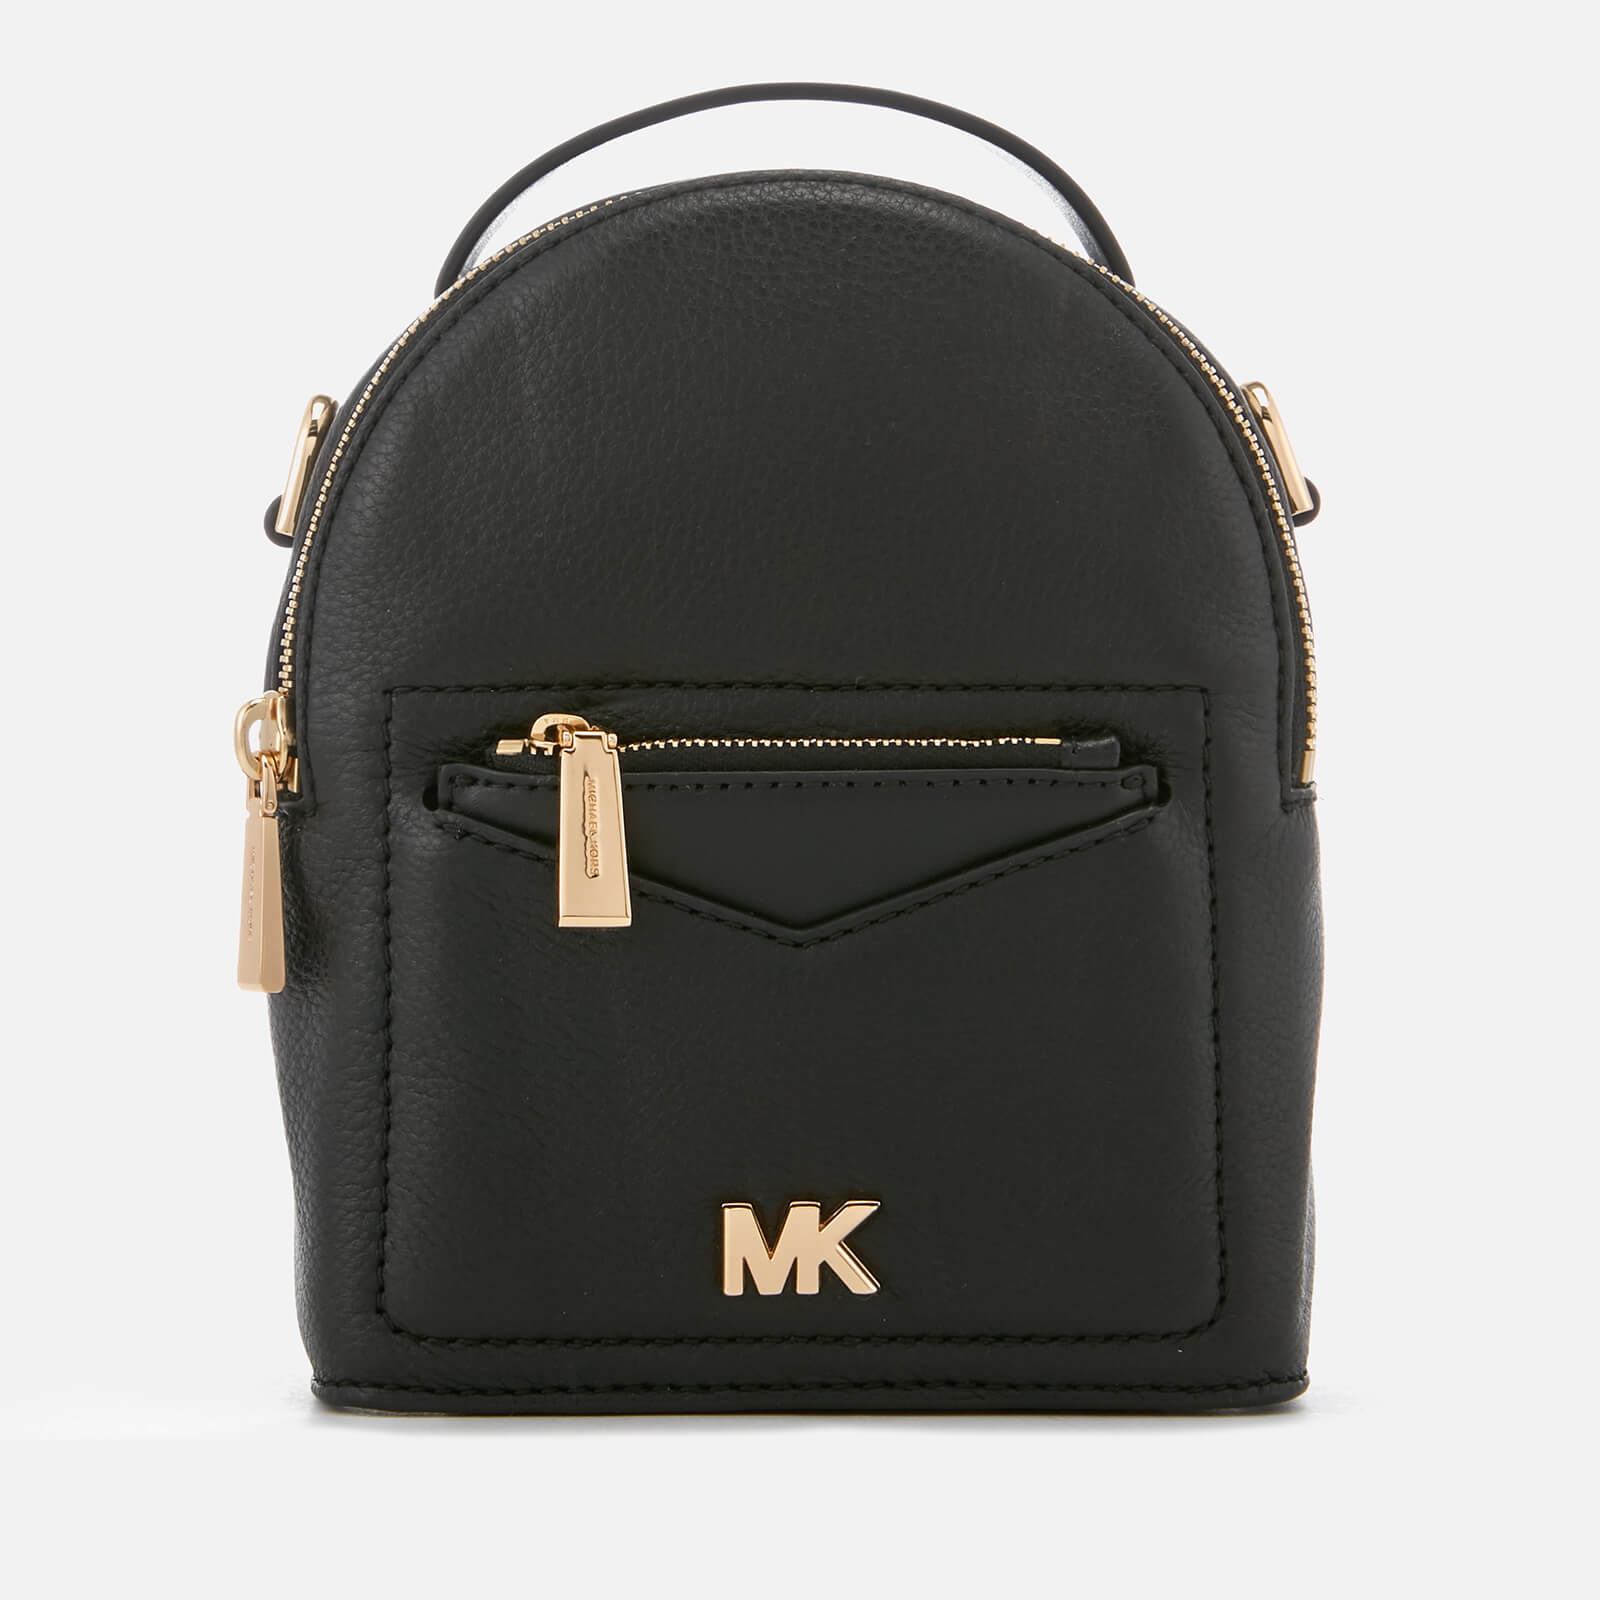 2c9e82aed484 ... MICHAEL MICHAEL KORS Women s Jessa Extra Small Convertible Backpack -  Black